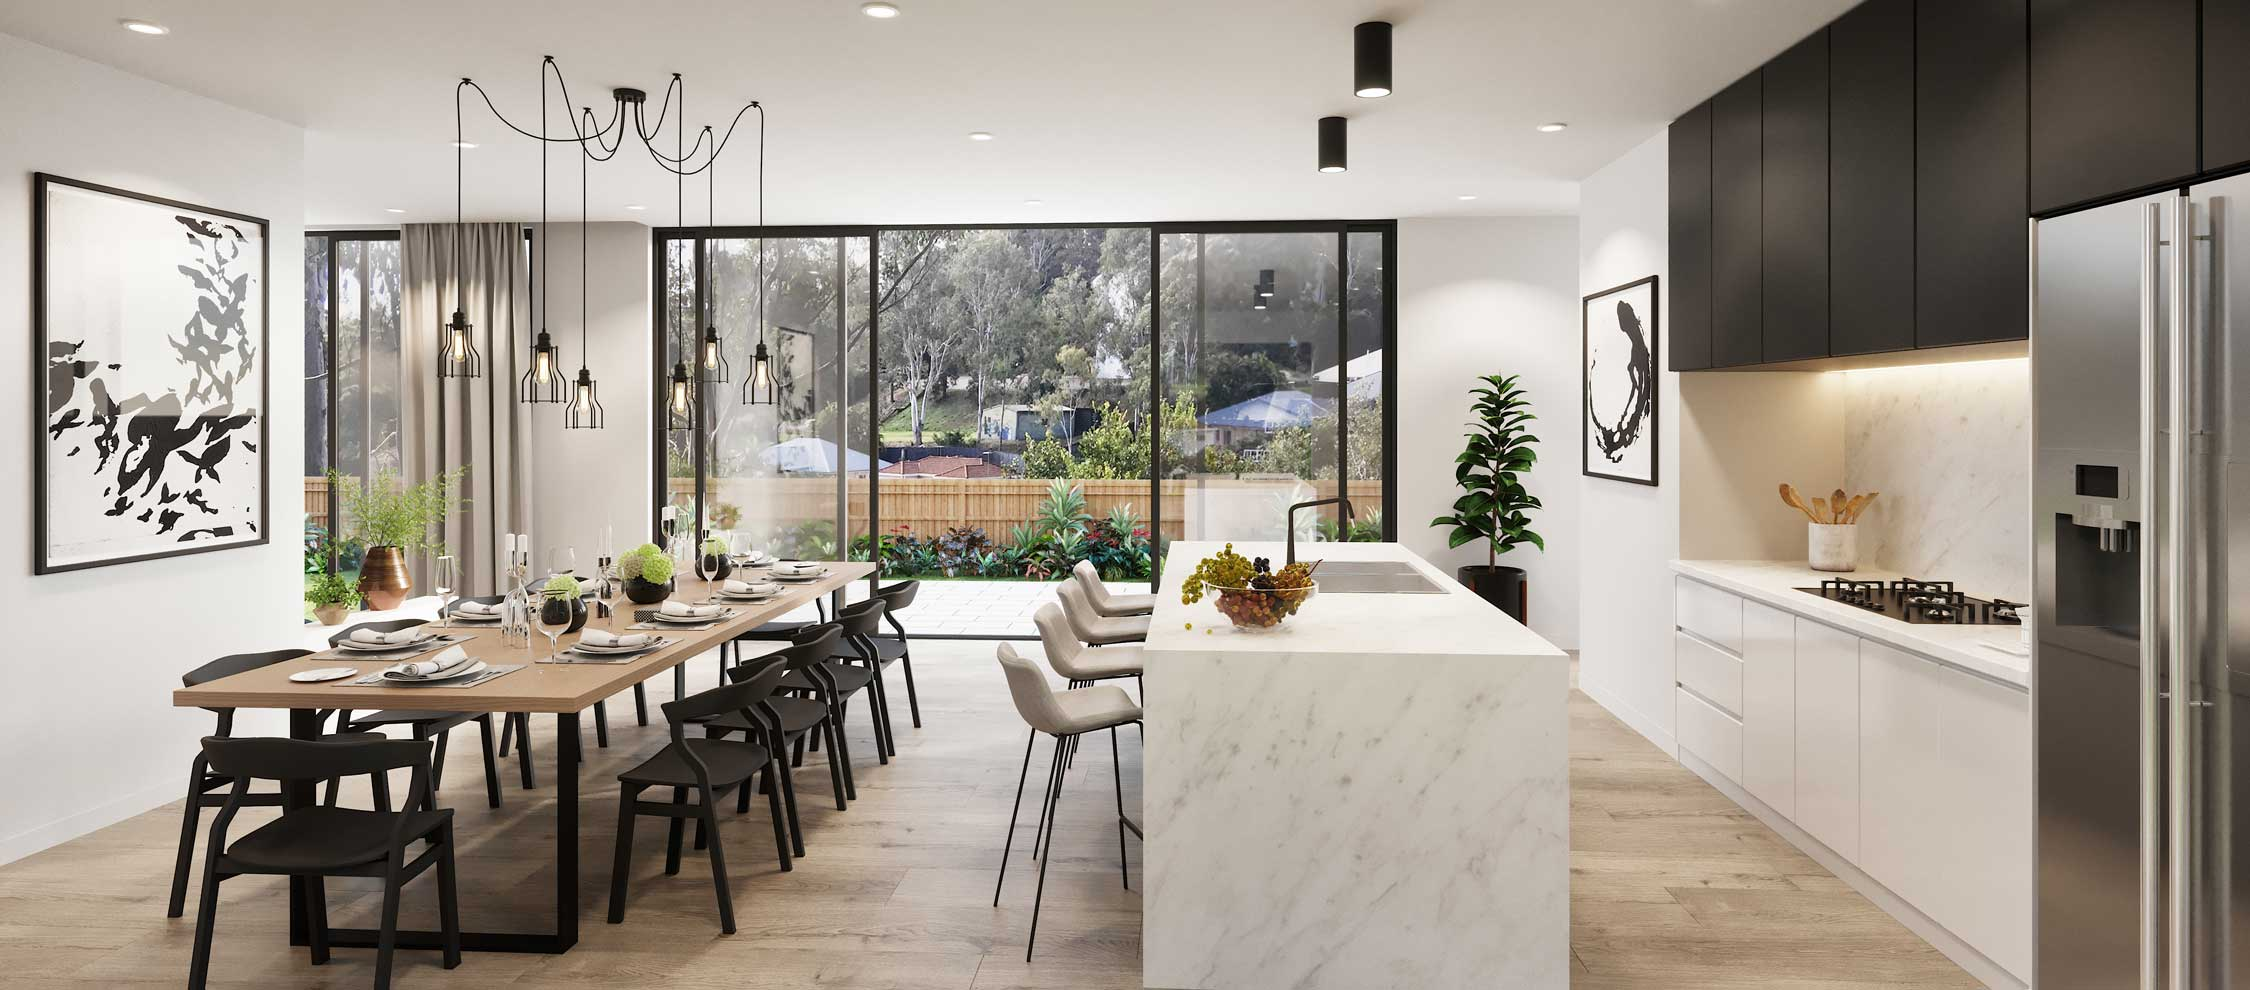 Kitchen and dining at The Cascades | House and Land for Sale in Kenmore, Brisbane | Artist's Impression